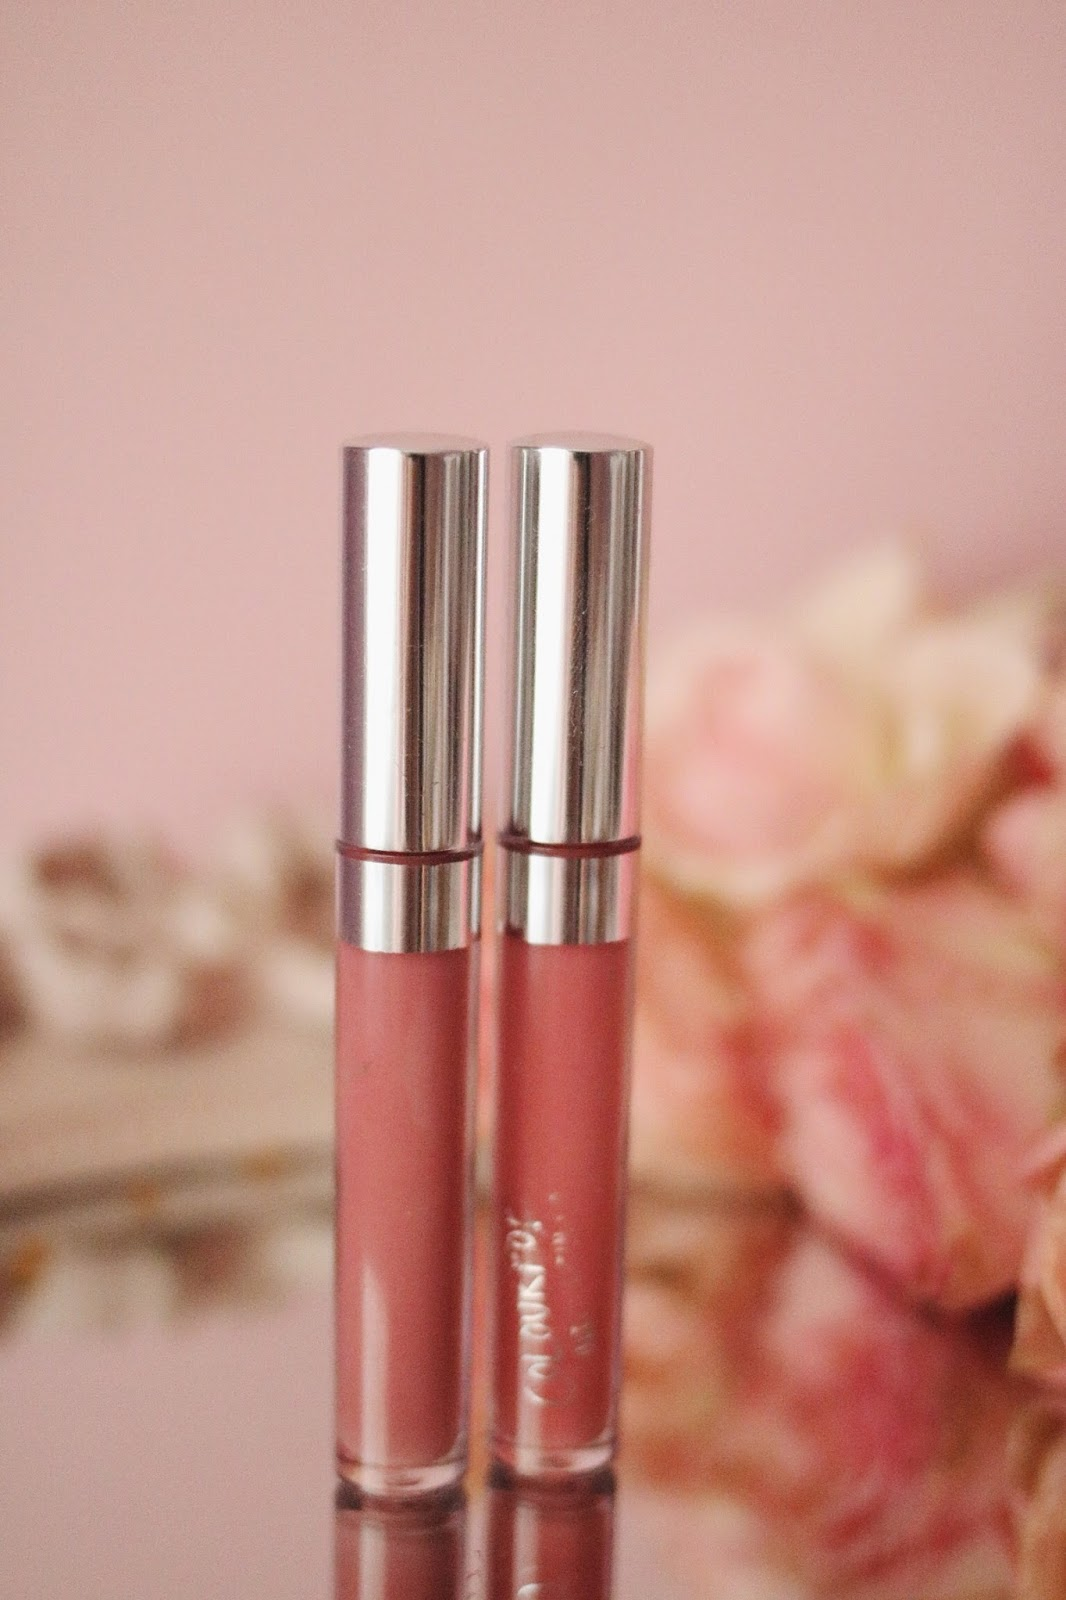 rosemademoiselle-rose-mademoiselle-colourpop-kathleen-lights-where-the-ligh-is-collection-ultra-satin-lip-alyssa-november-lumière-2-revue-avis-swatch-blog-beauté-paris